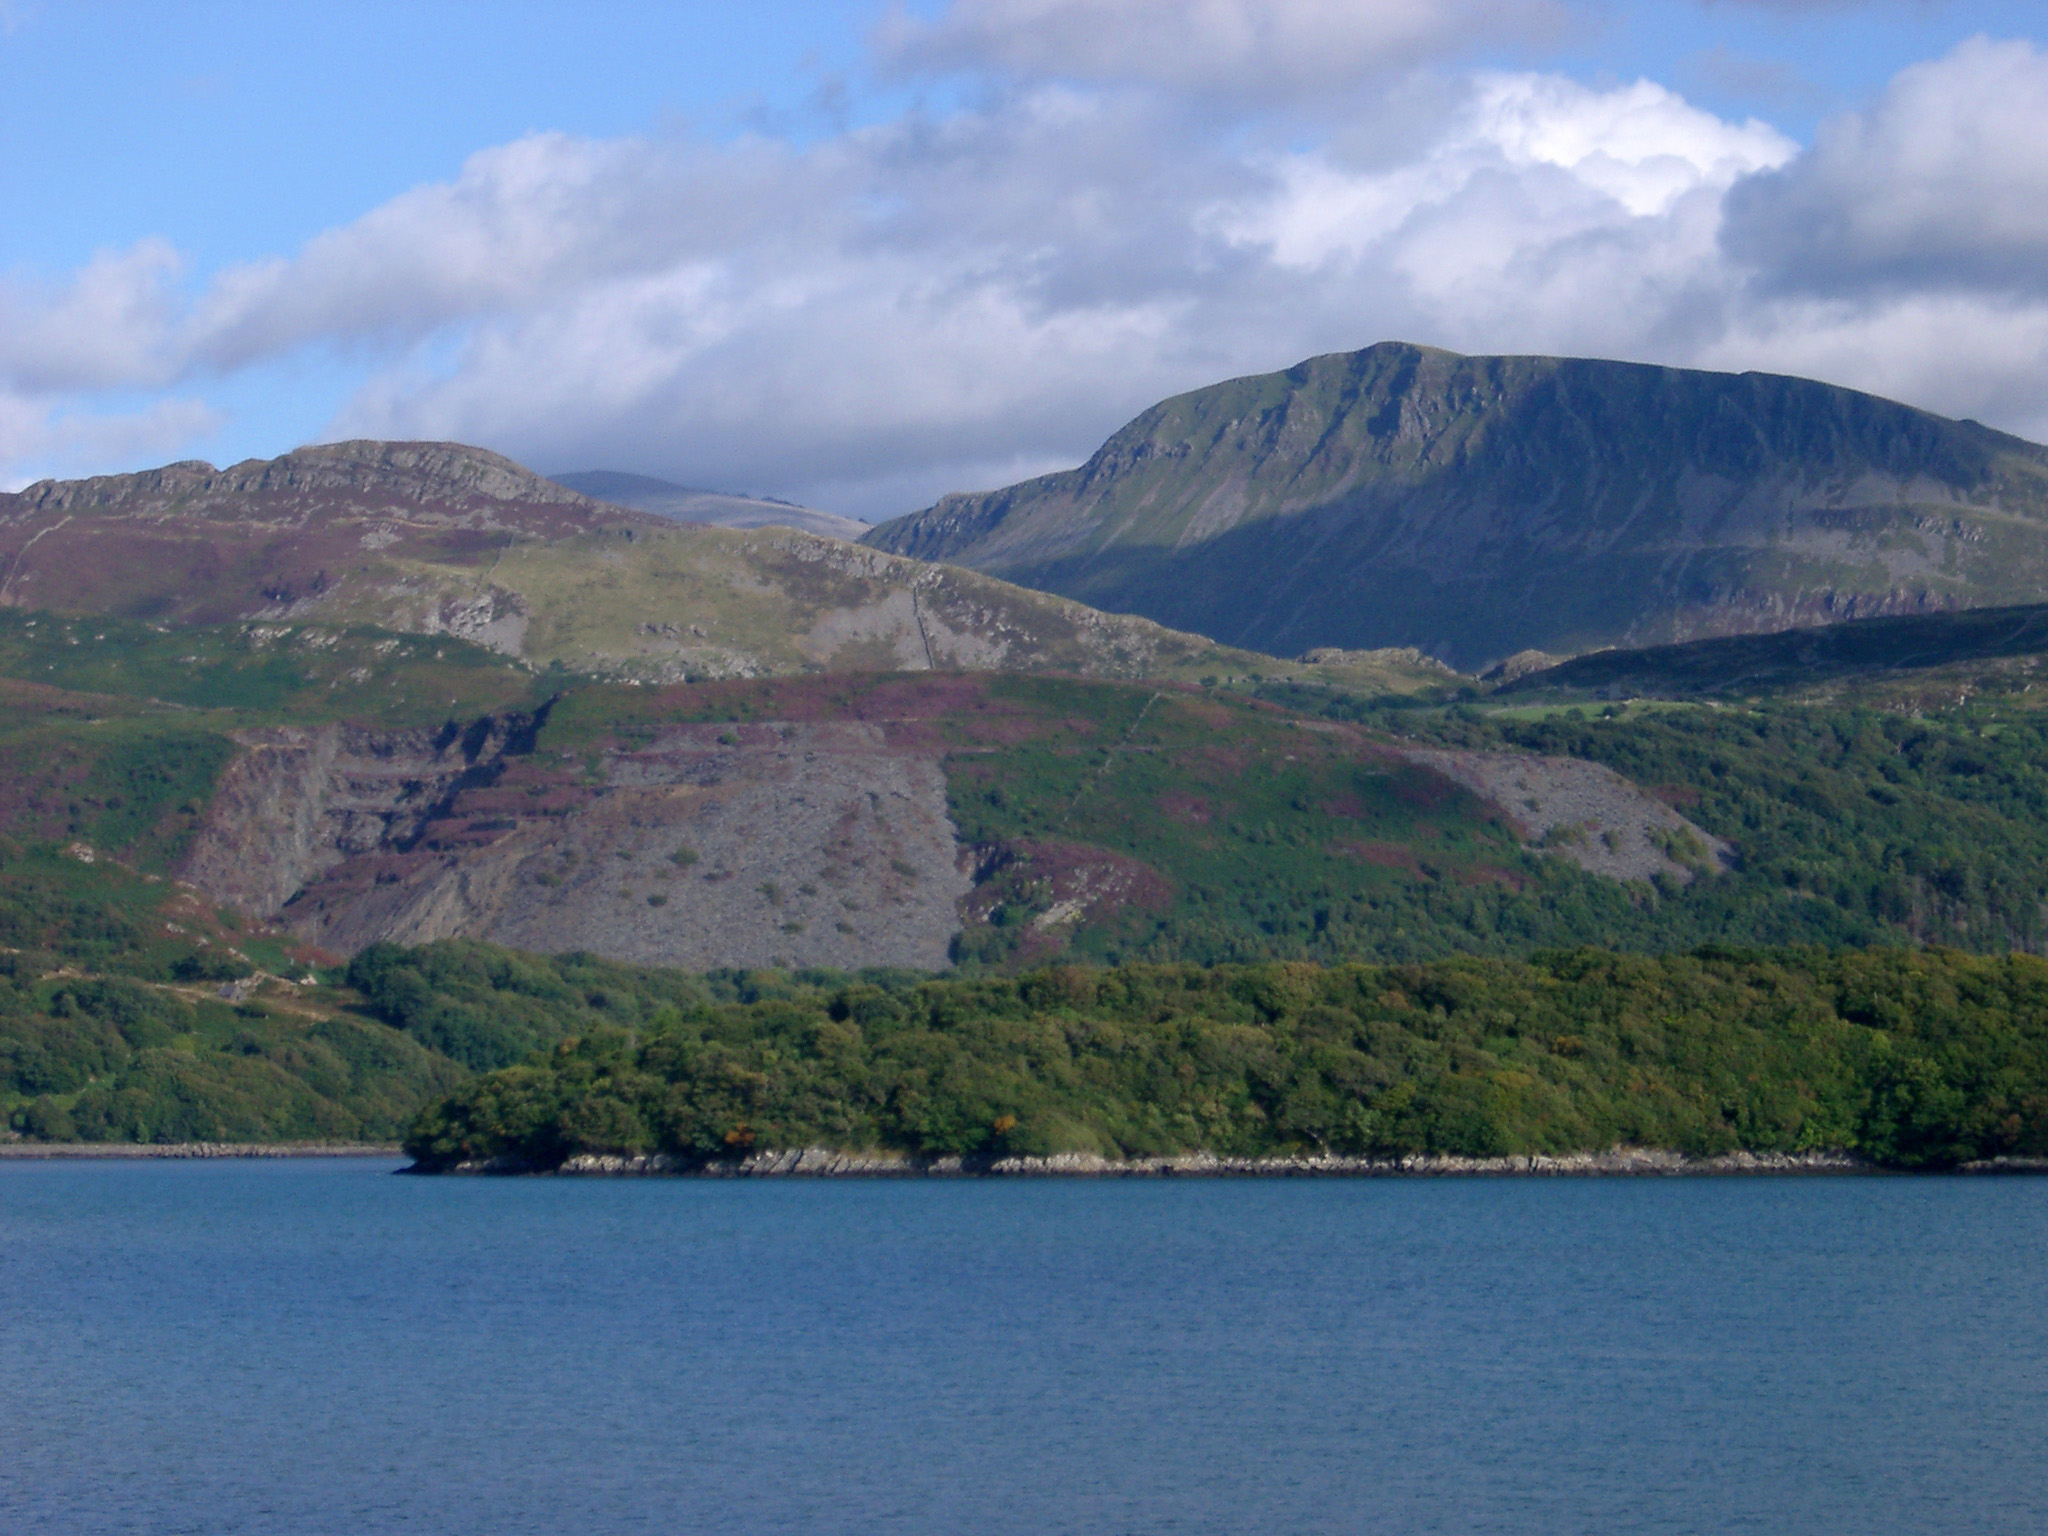 View of Lake Llyn Padam, a glacial lake at the foot of Snowdon on whose banks lies the busy village of Llanberis, Wales